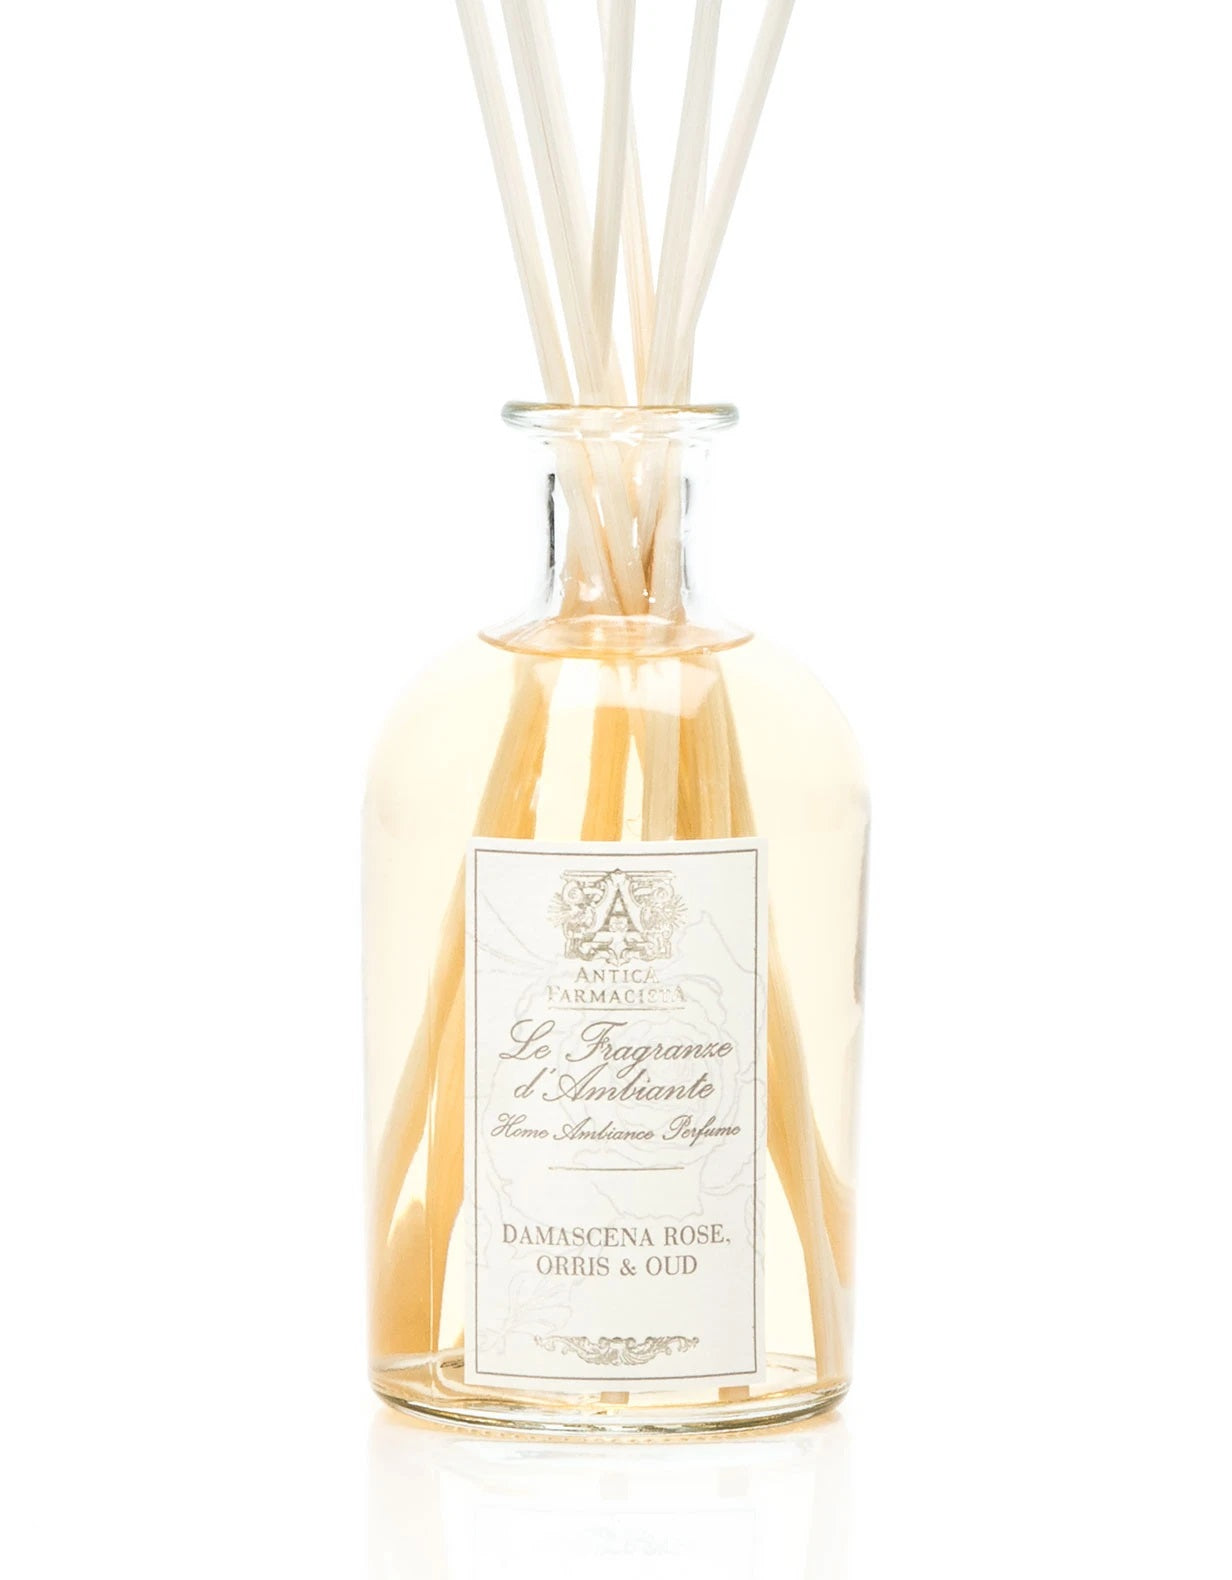 Damascena Rose, Orris & Oud 250 ml Room Diffuser by Antica Famacista